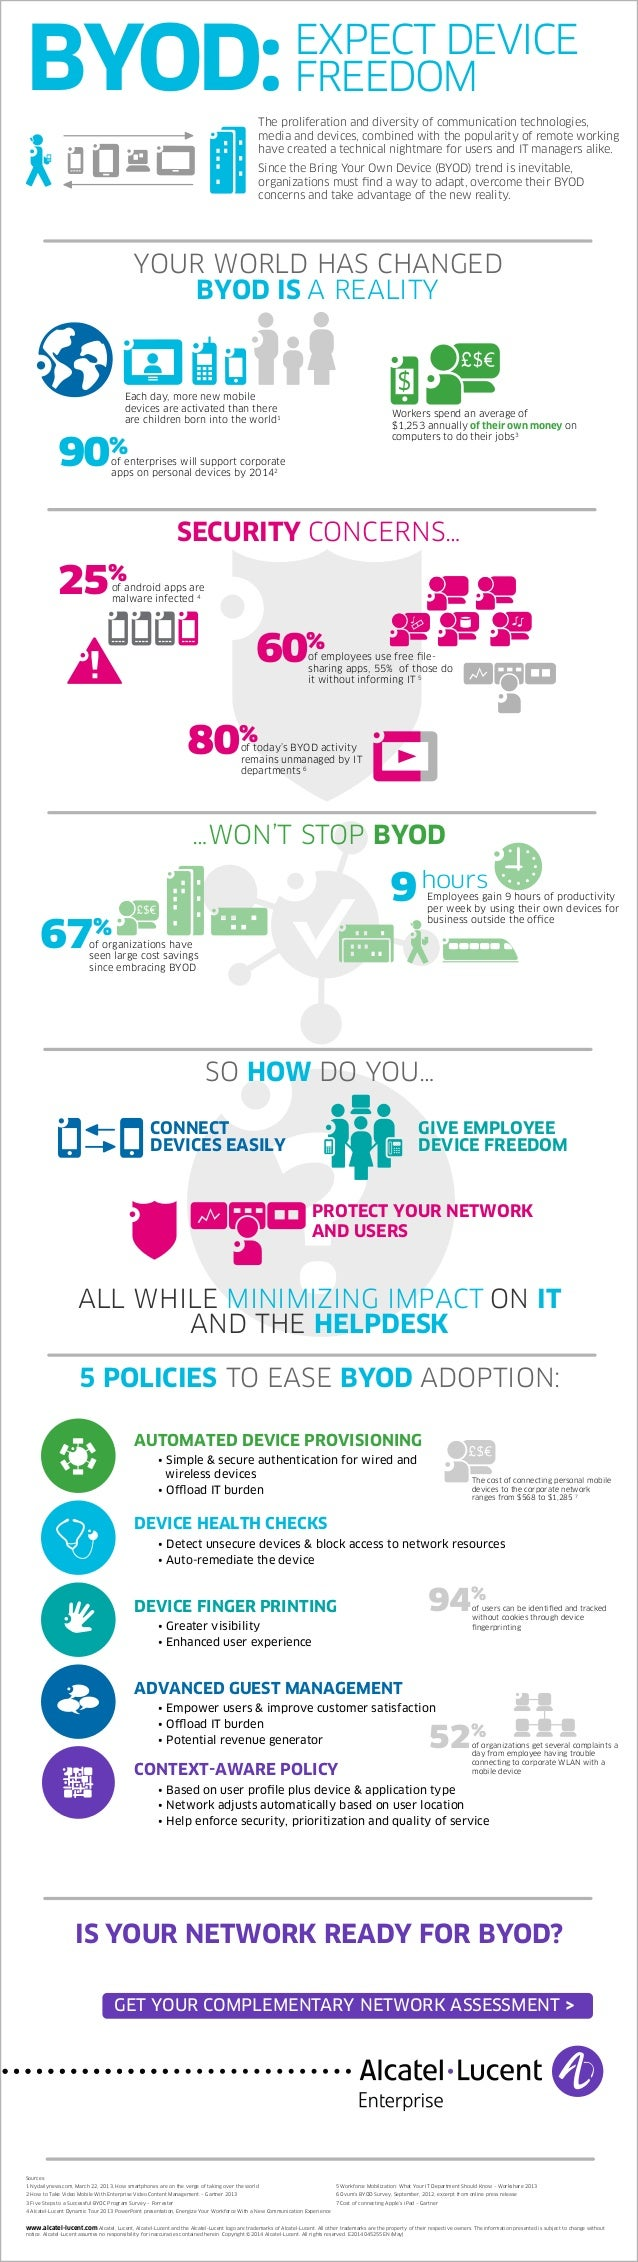 BYOD - Expect Device Freedom